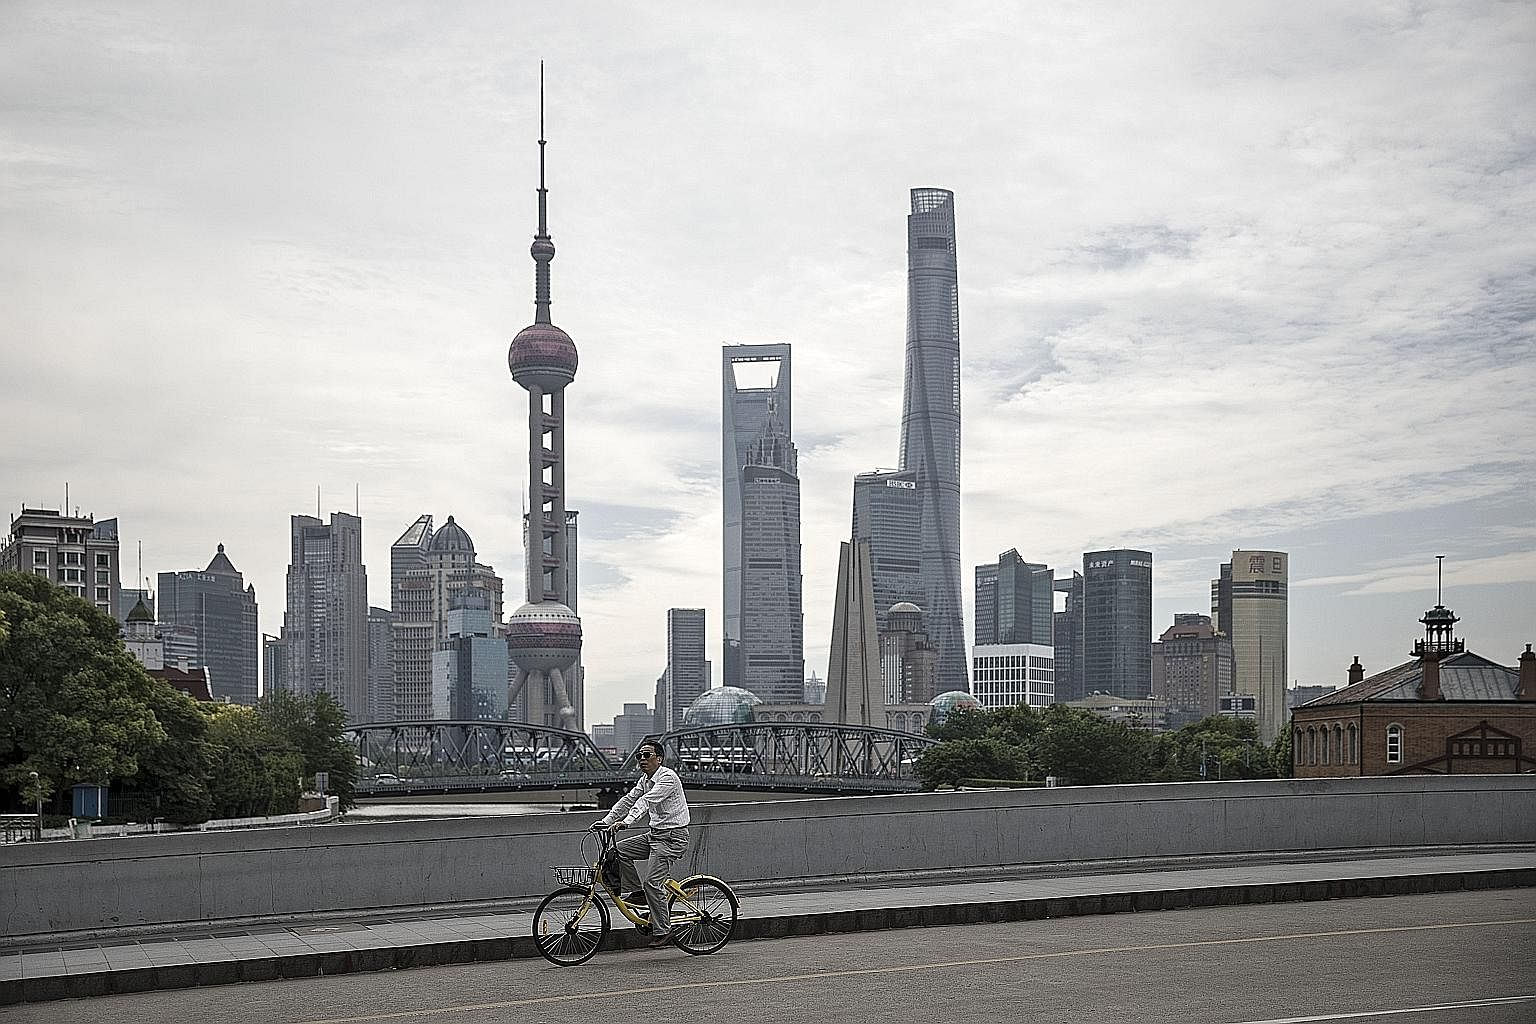 Shanghai, which has some of the world's tallest towers, is facing the growing problem of filling them as China's real estate market undergoes changes.